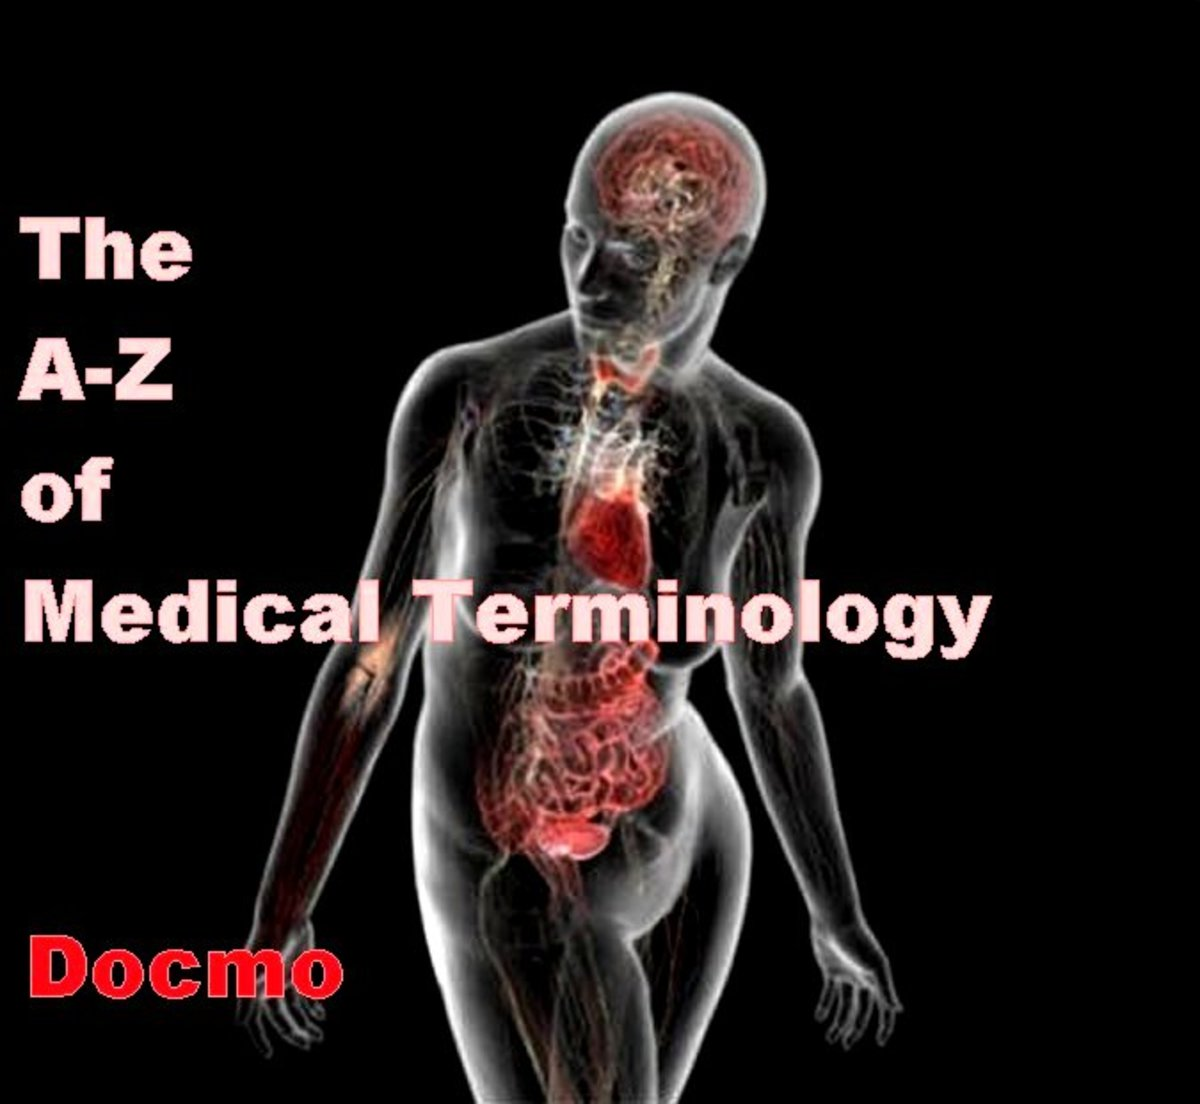 the-a-z-of-medical-terminology